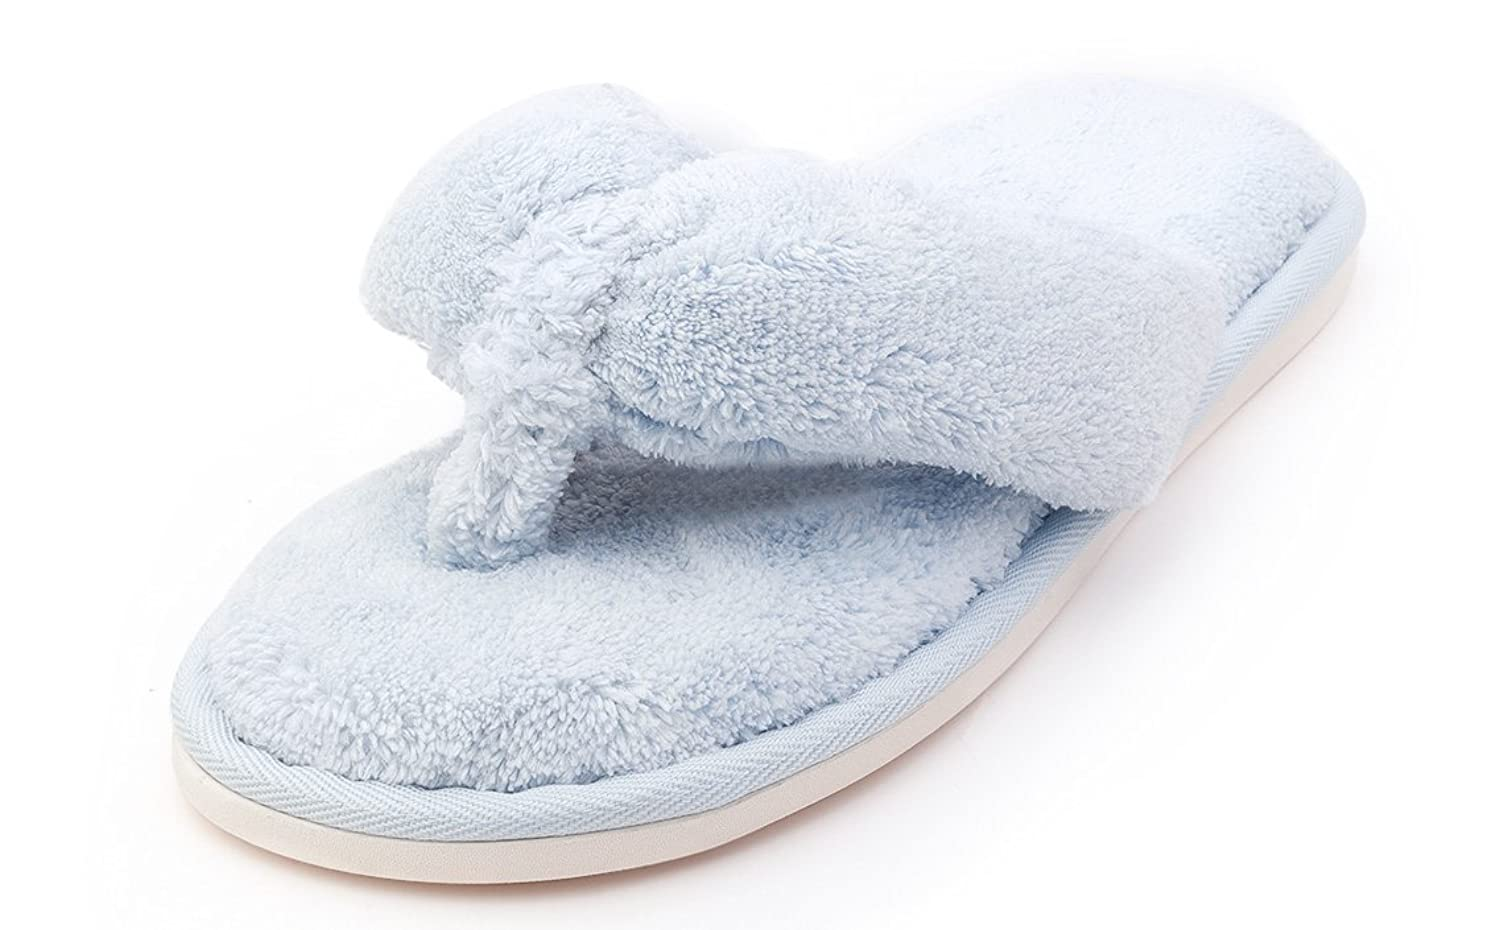 Comfort Slippers Indoor Flip Flop Thong Spa Slip on House Slippers ...